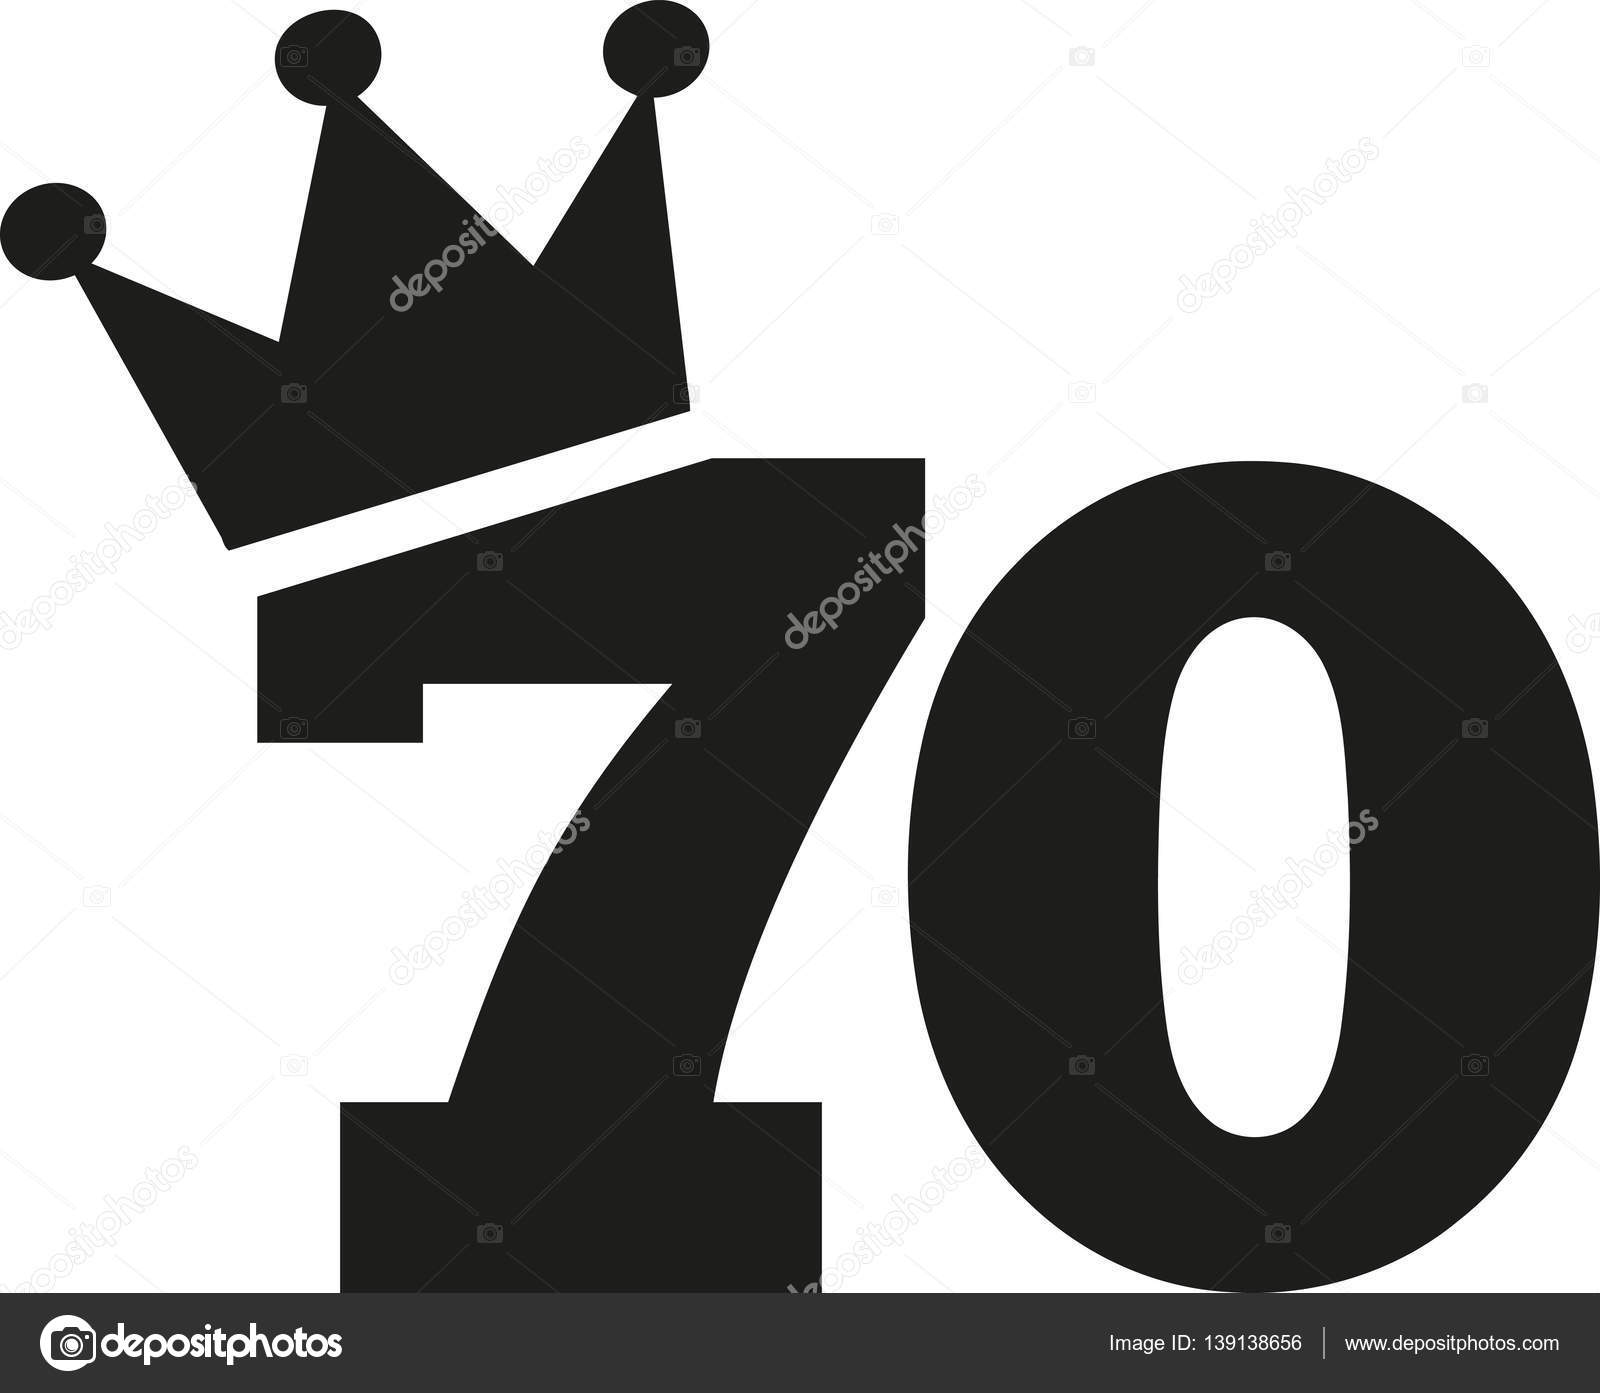 70th birthday number crown 70 vector clip clipart illustration drawings illustrations royalty miceking graphic 70s graphics seventy happy icons gold